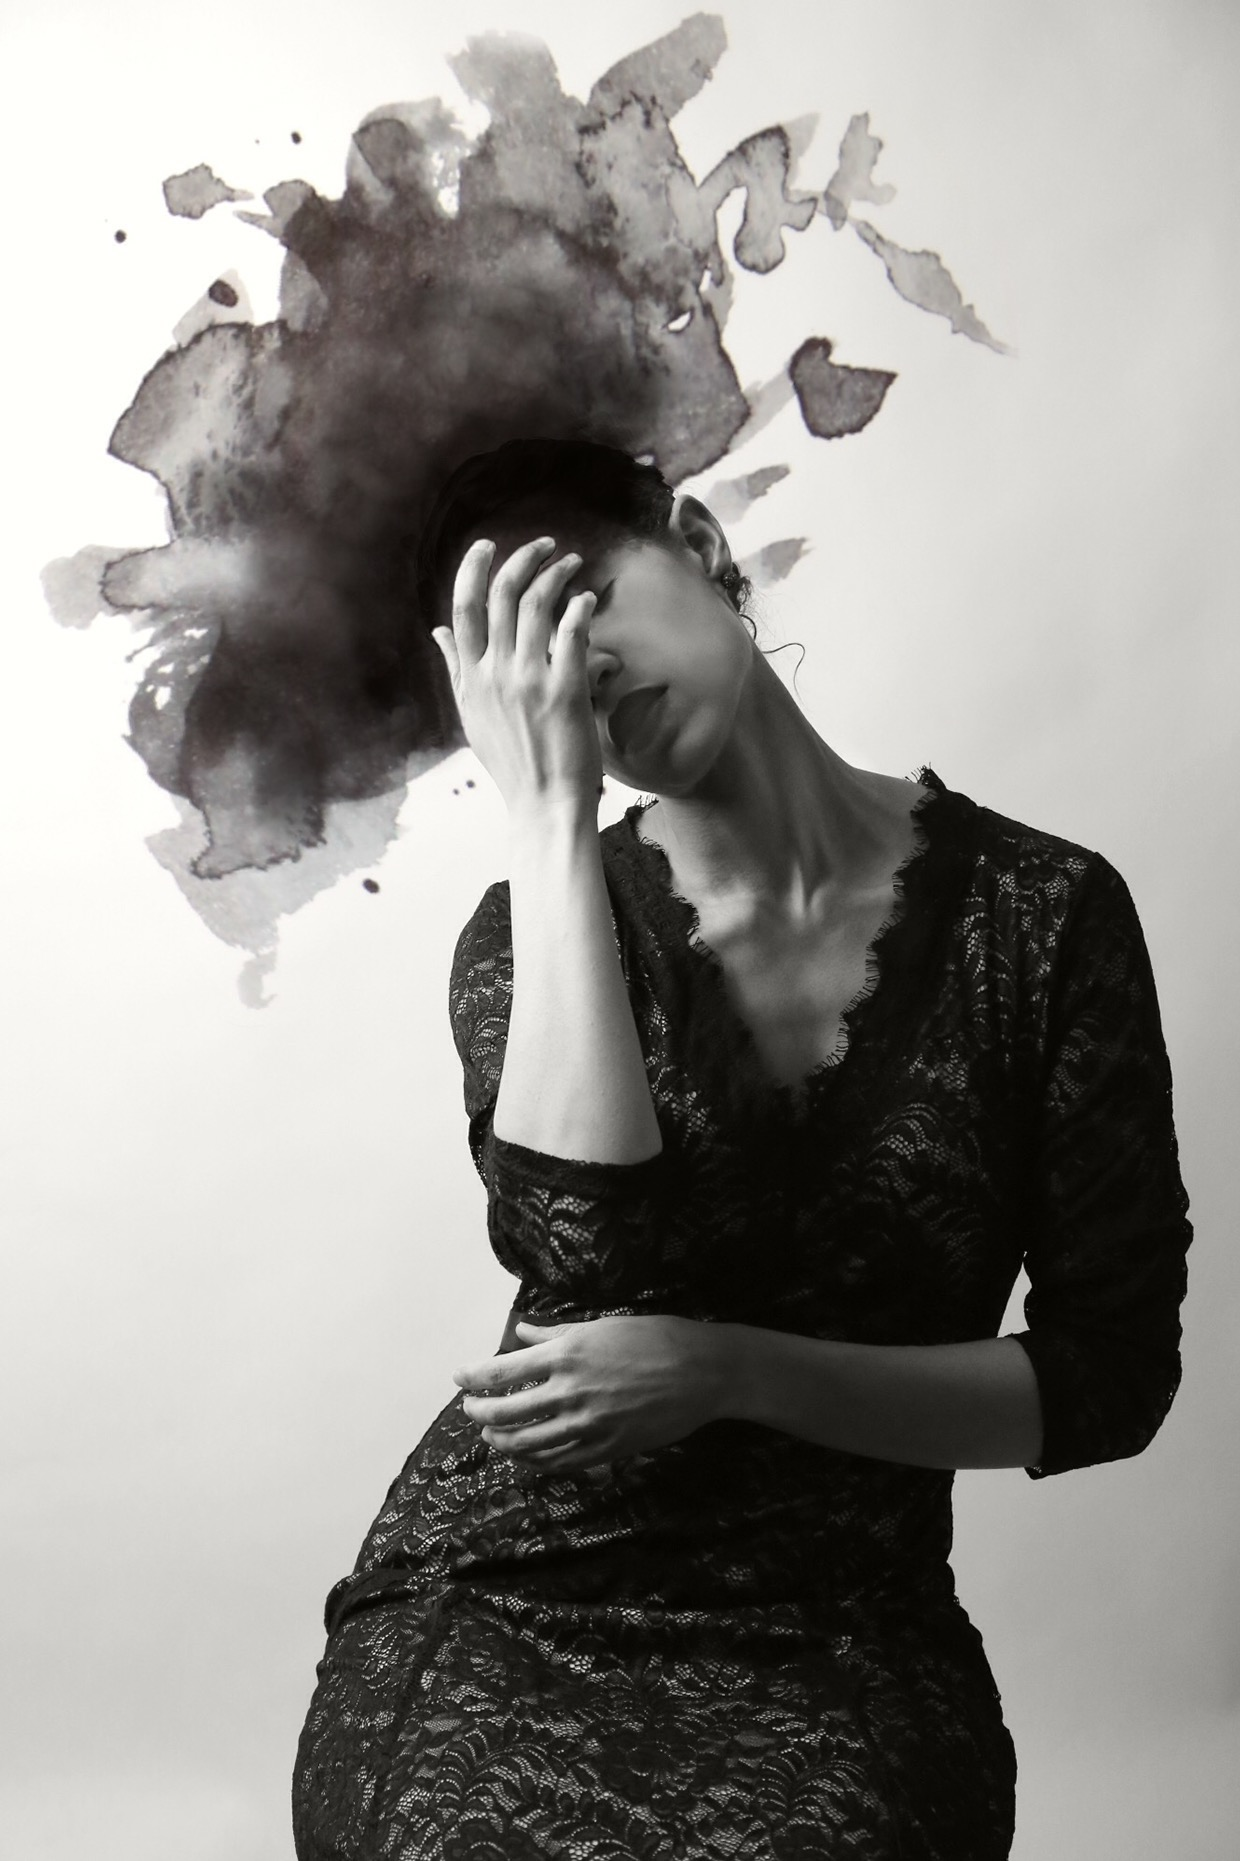 Tears As They Dry / Josephine Cardin (3)